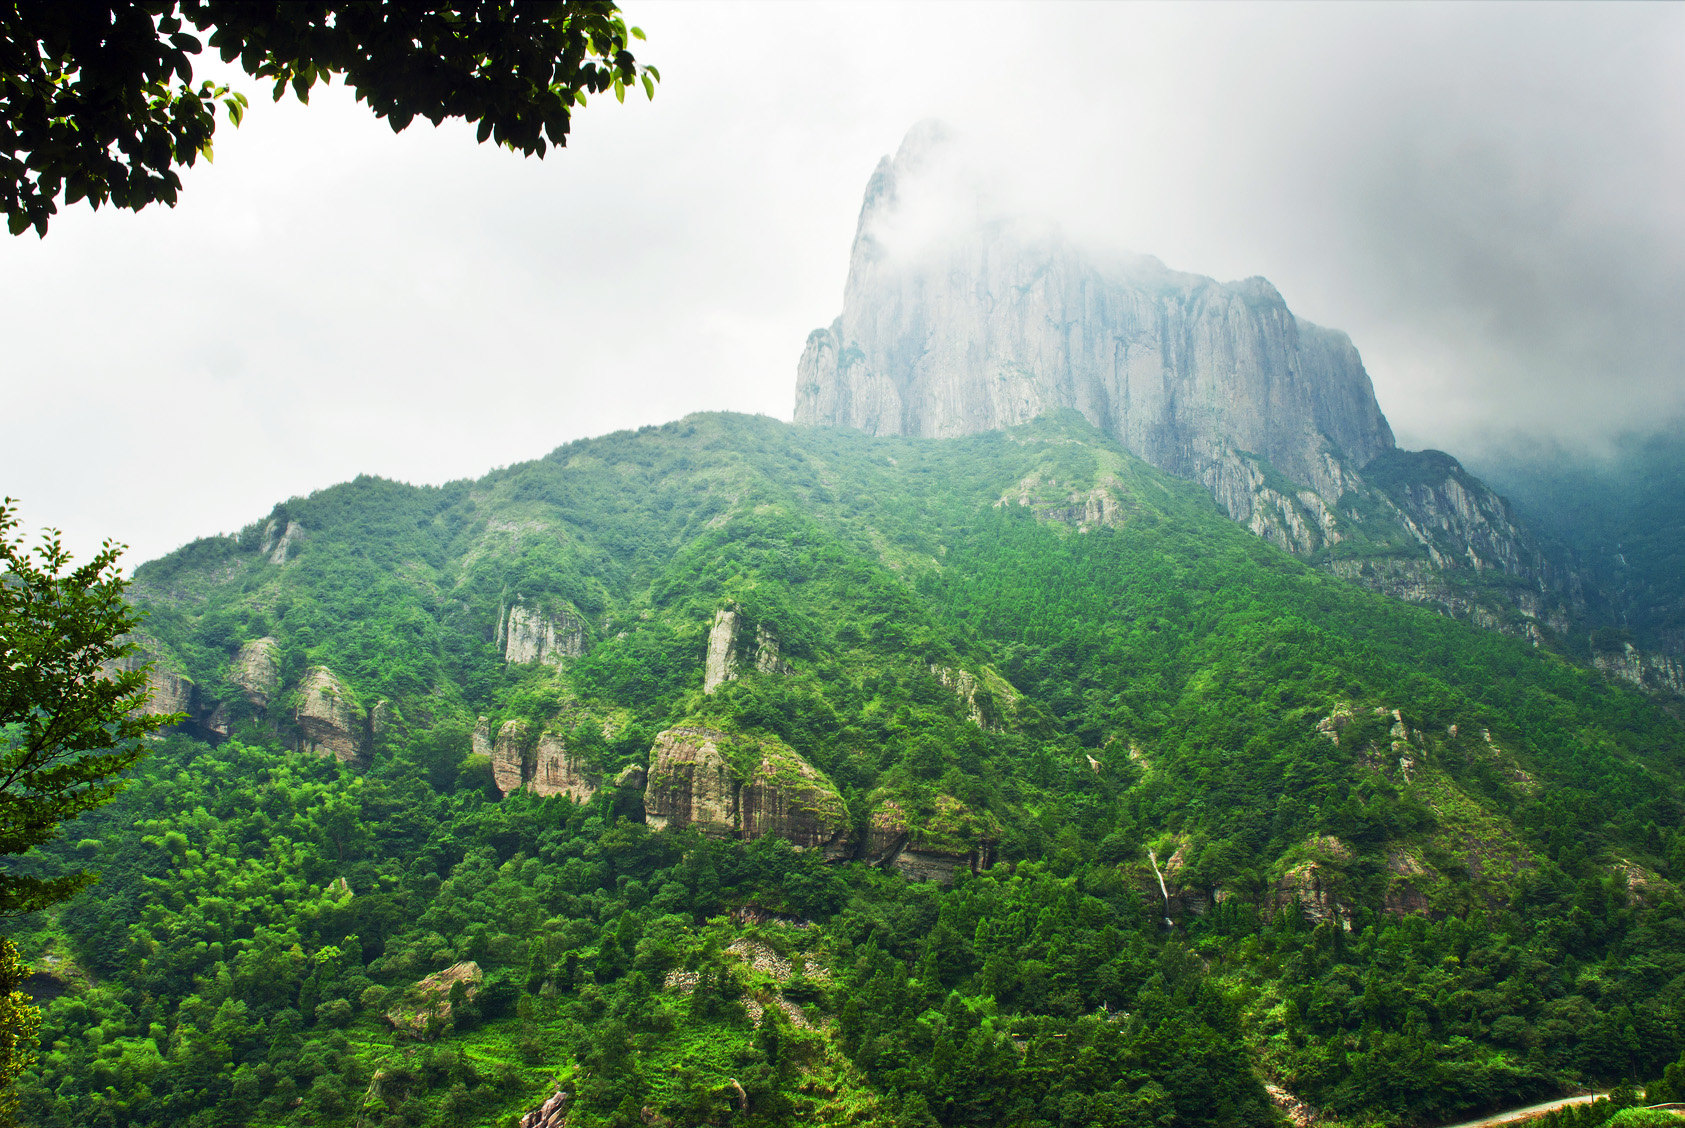 Lingyan Mountain Scenic Area